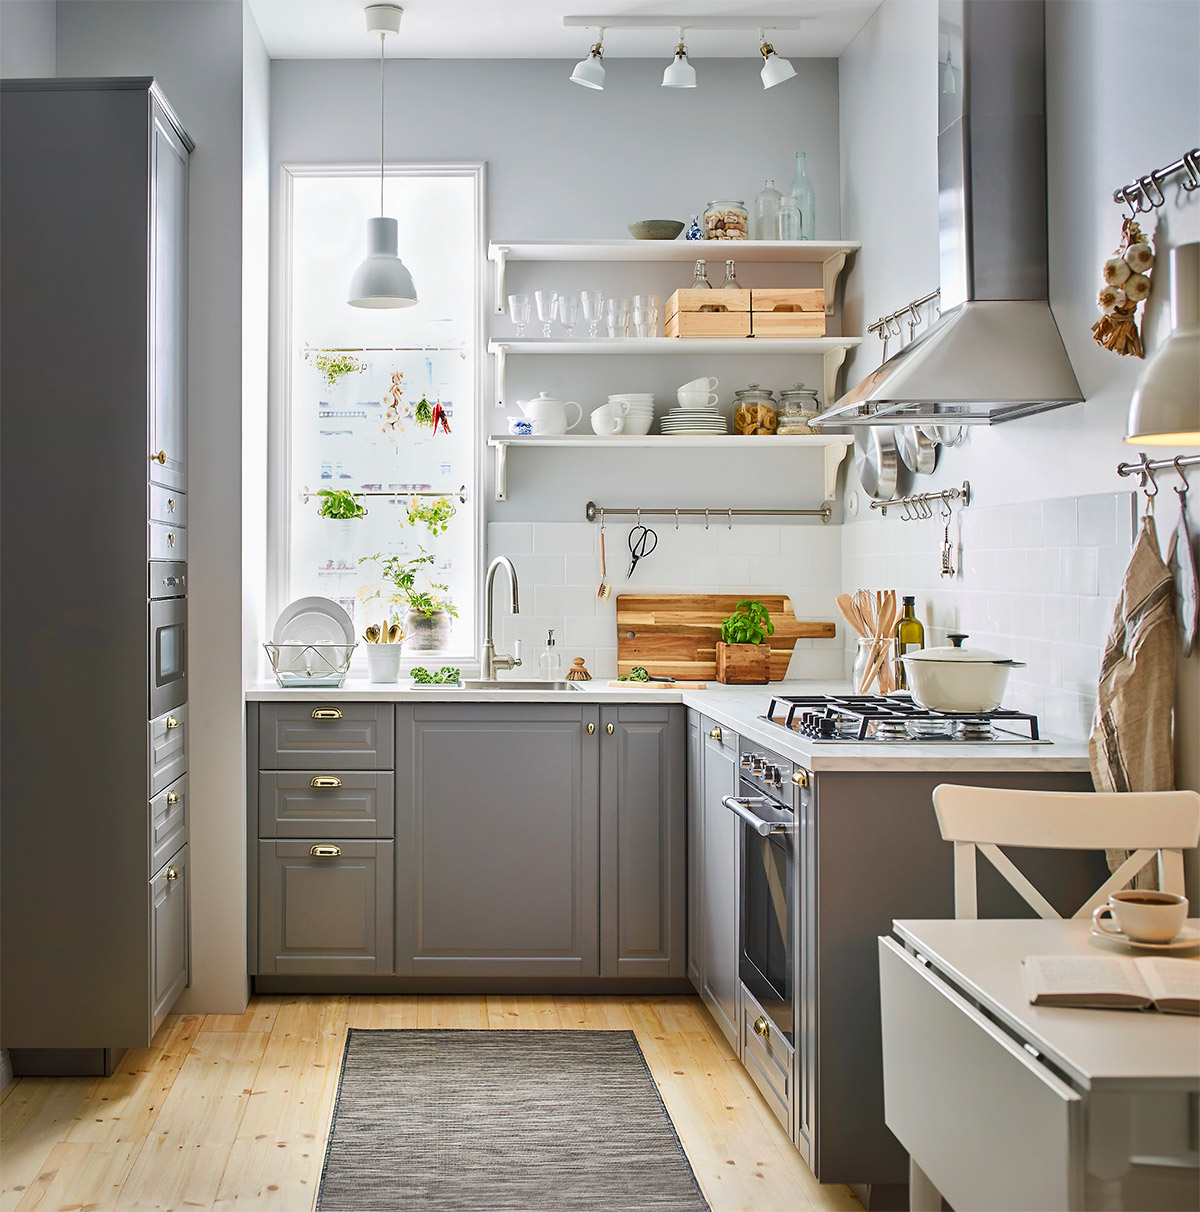 Excellent 50 Splendid Small Kitchens And Ideas You Can Use From Them Interior Design Ideas Ghosoteloinfo